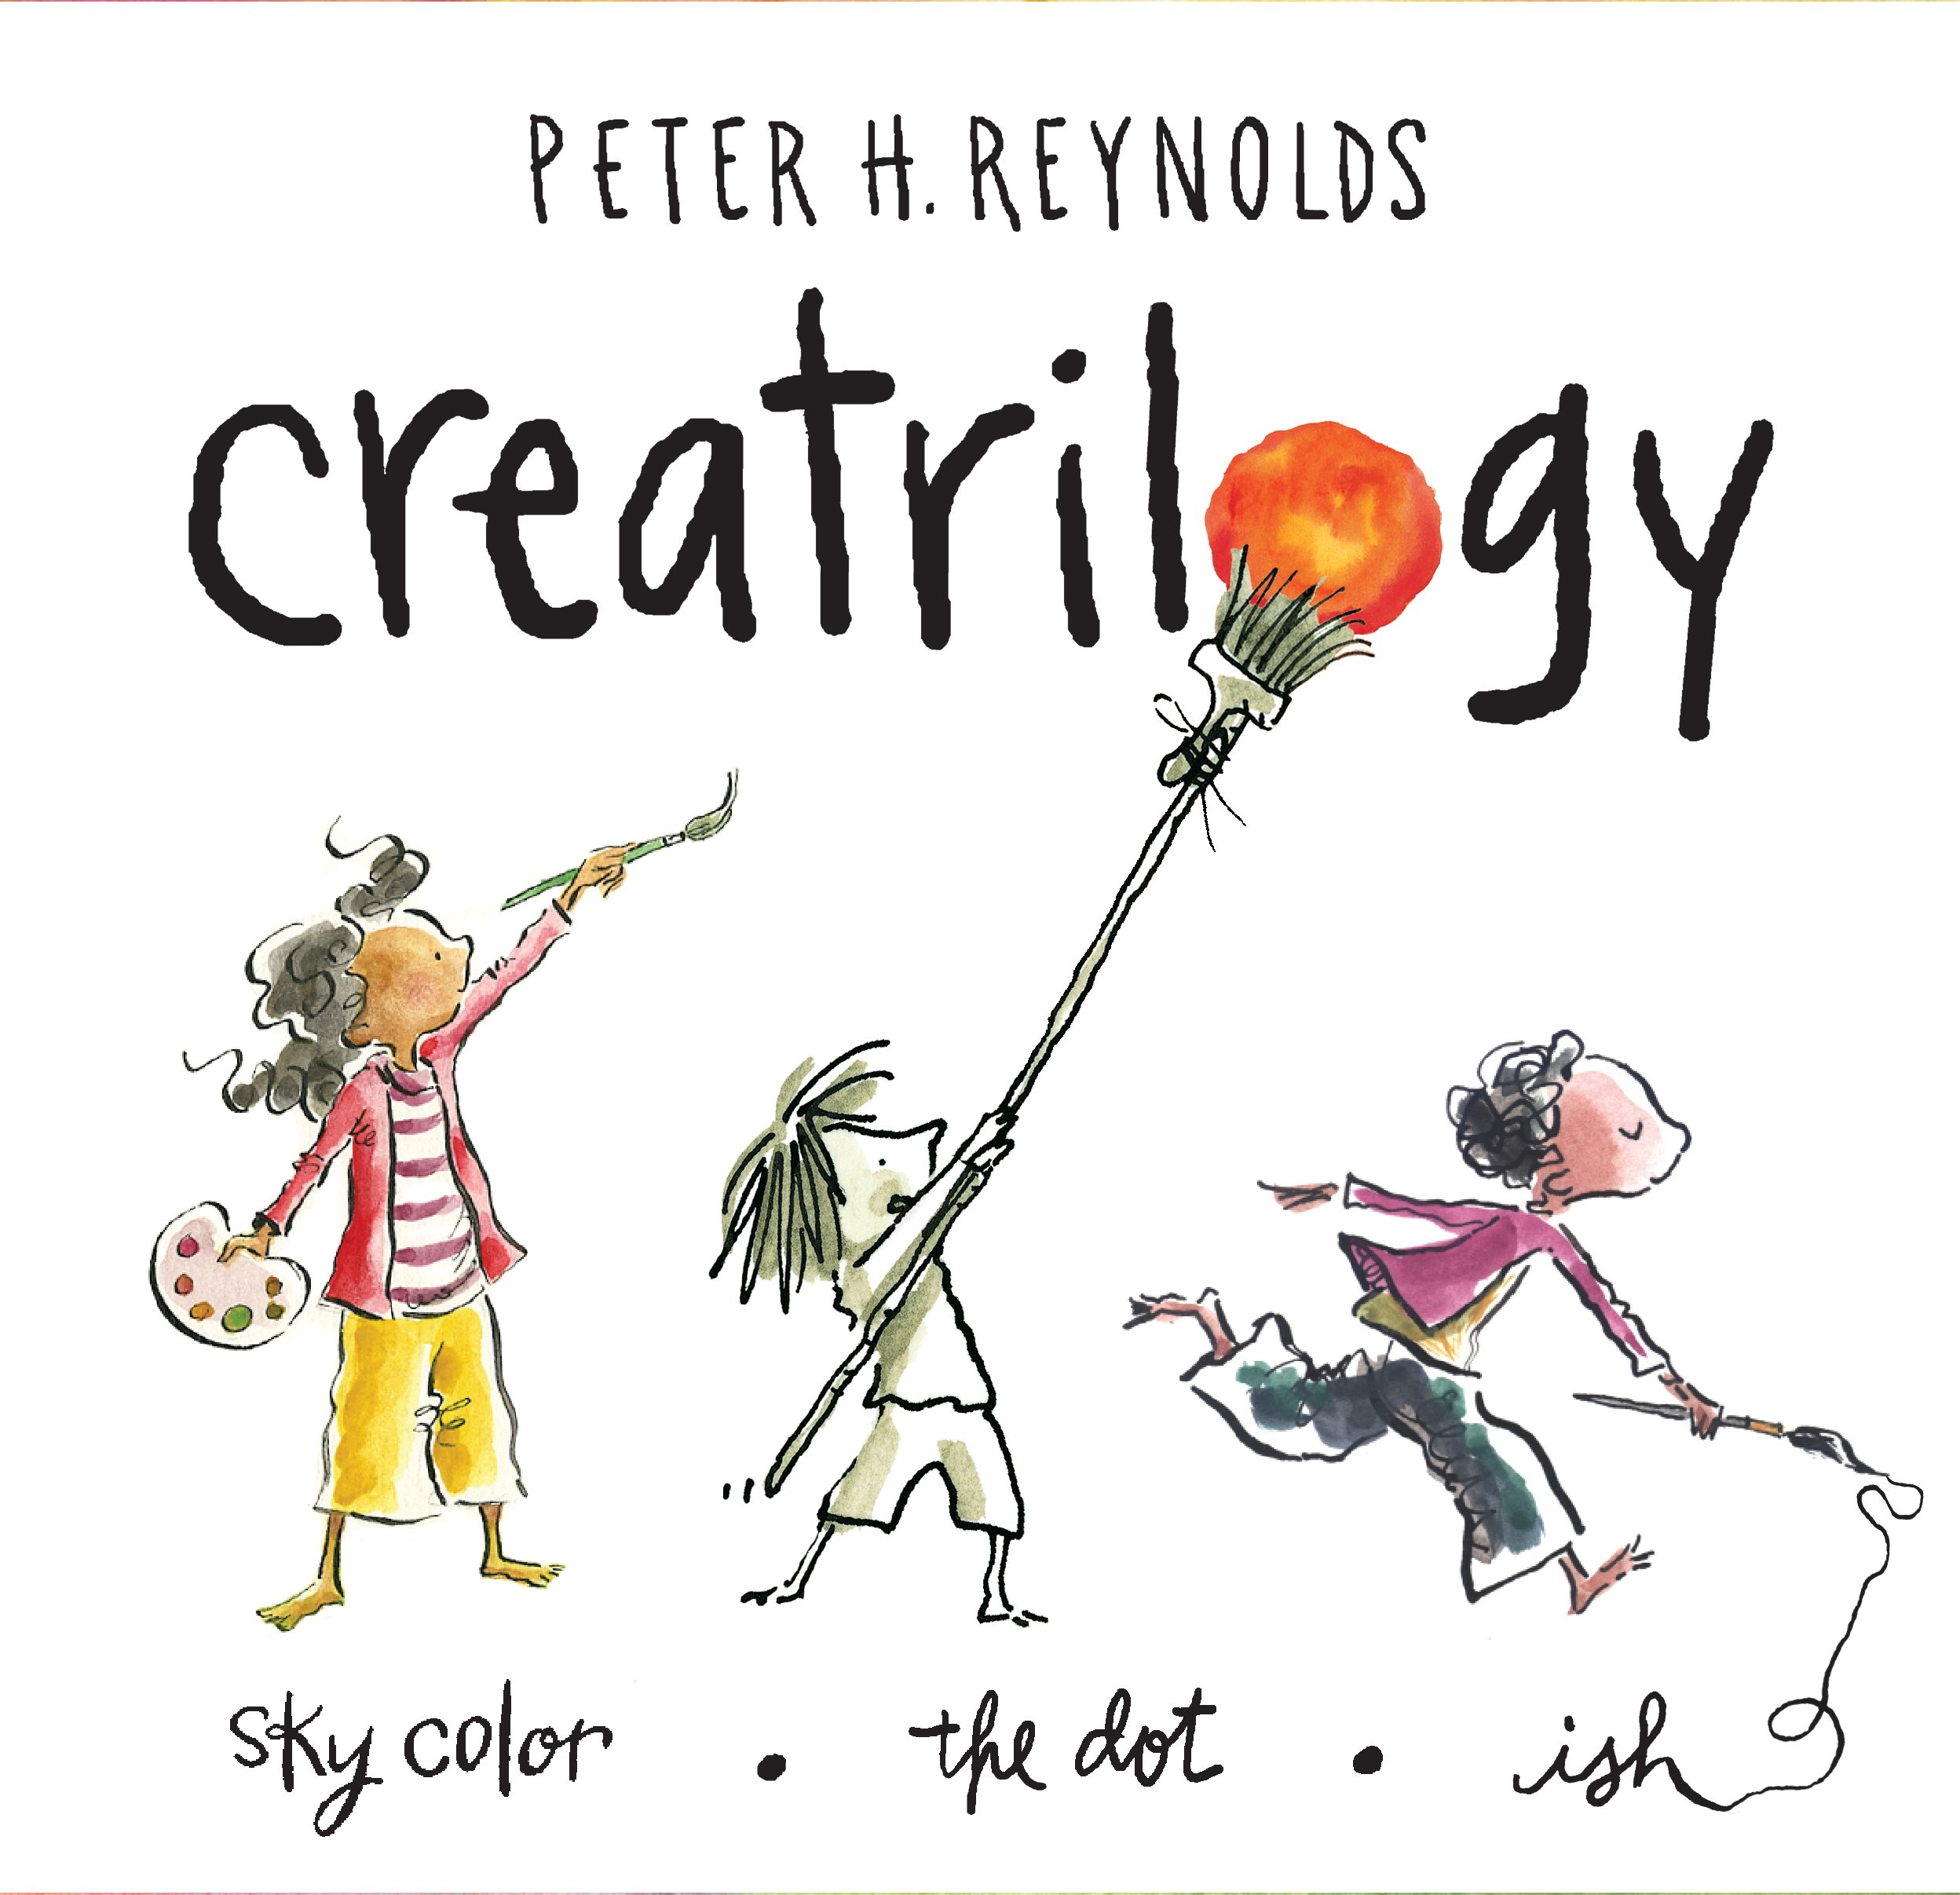 Peter Reynolds Creatrilogy Box Set (Dot, Ish, Sky Color)